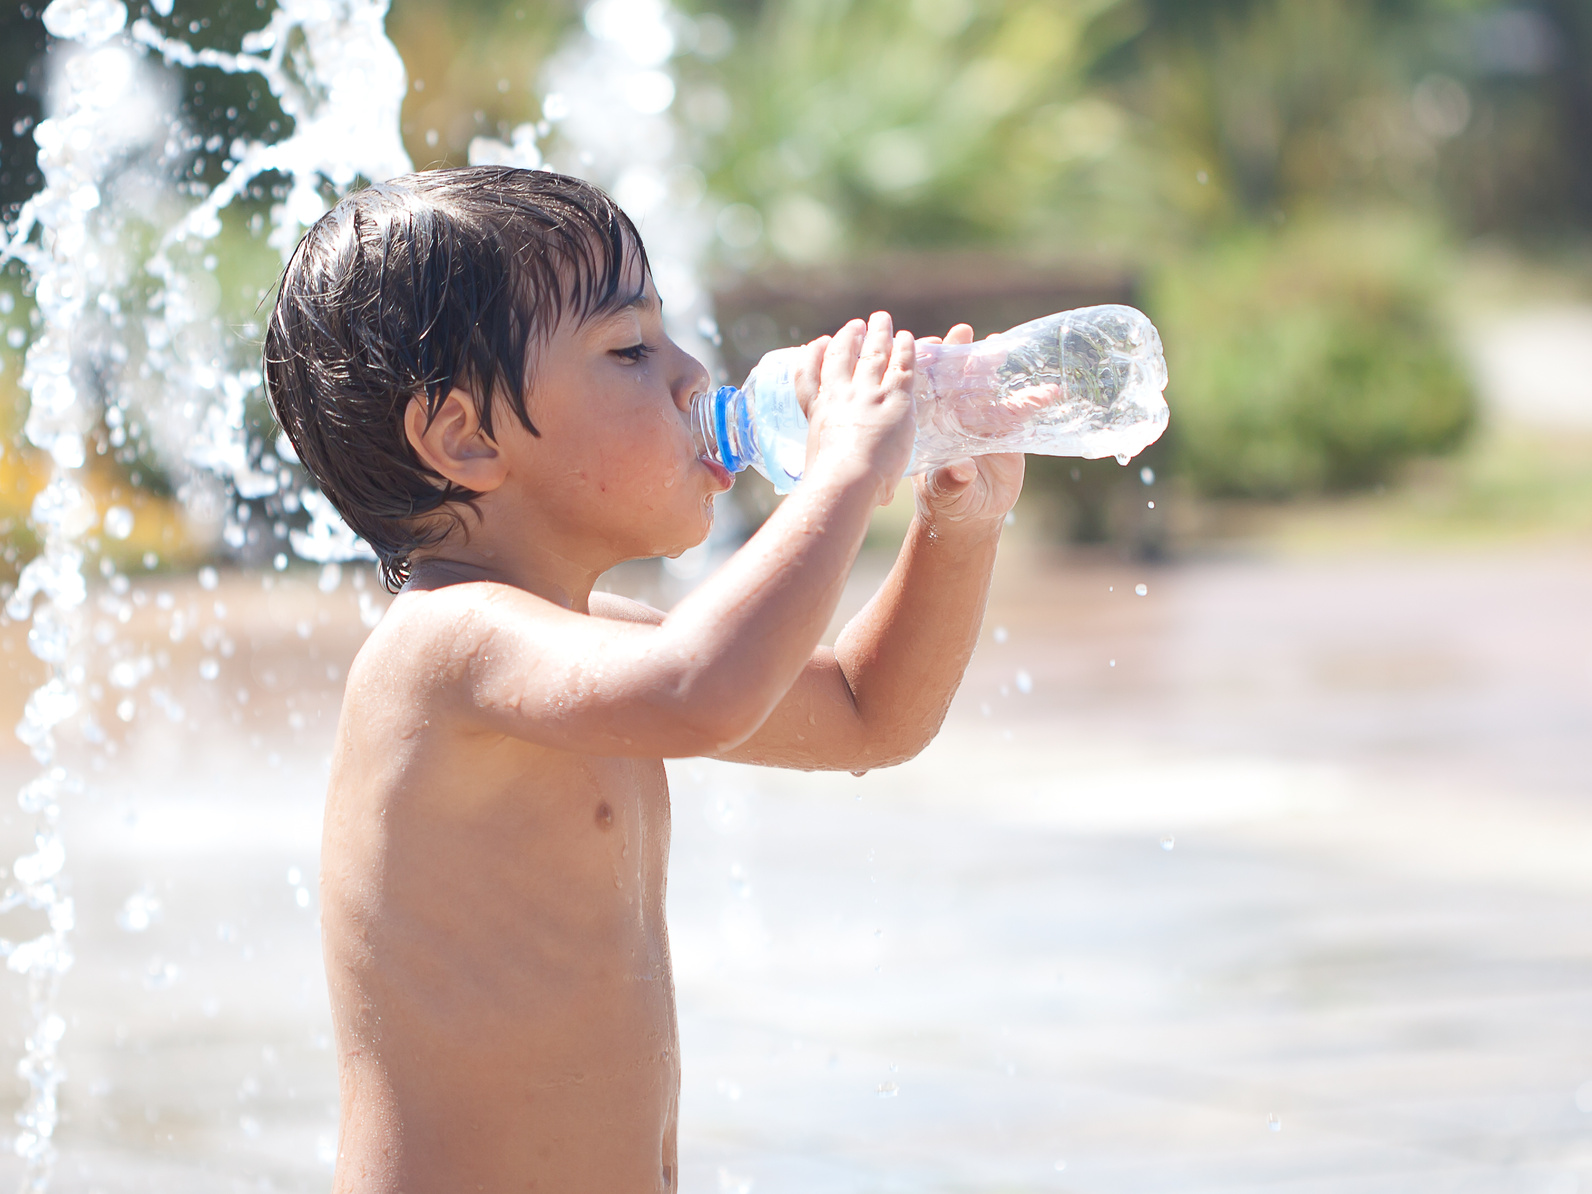 Global Dehydration in Children: How We Can Change It